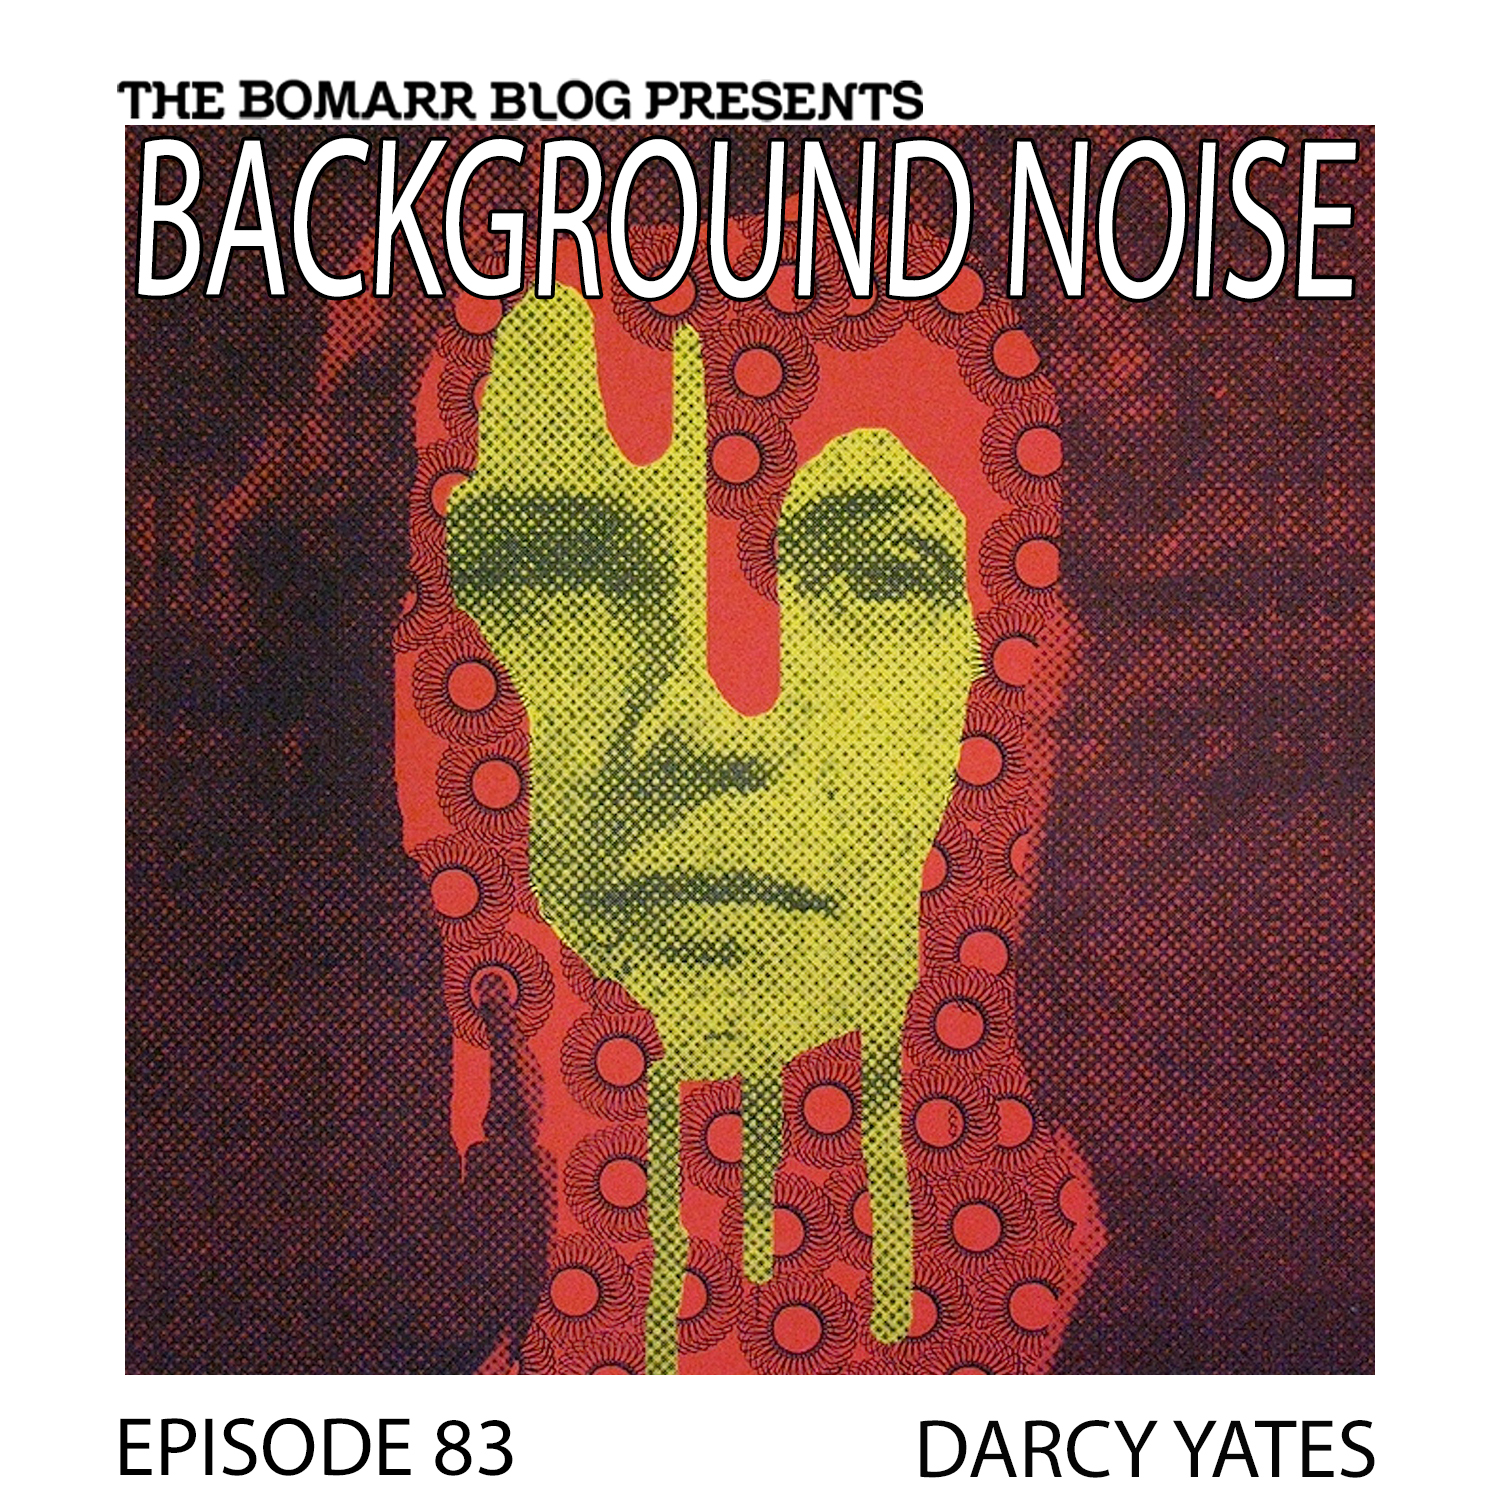 THE BACKGROUND NOISE PODCAST SERIES FOCUSES ON THE MUSIC THAT ARTISTS LISTEN TO WHEN THEY WORK, WHAT MUSIC INSPIRES THEM, OR JUST MUSIC THEY LIKE. THIS WEEK, IN EPISODE 83, the focus is on darcy yates